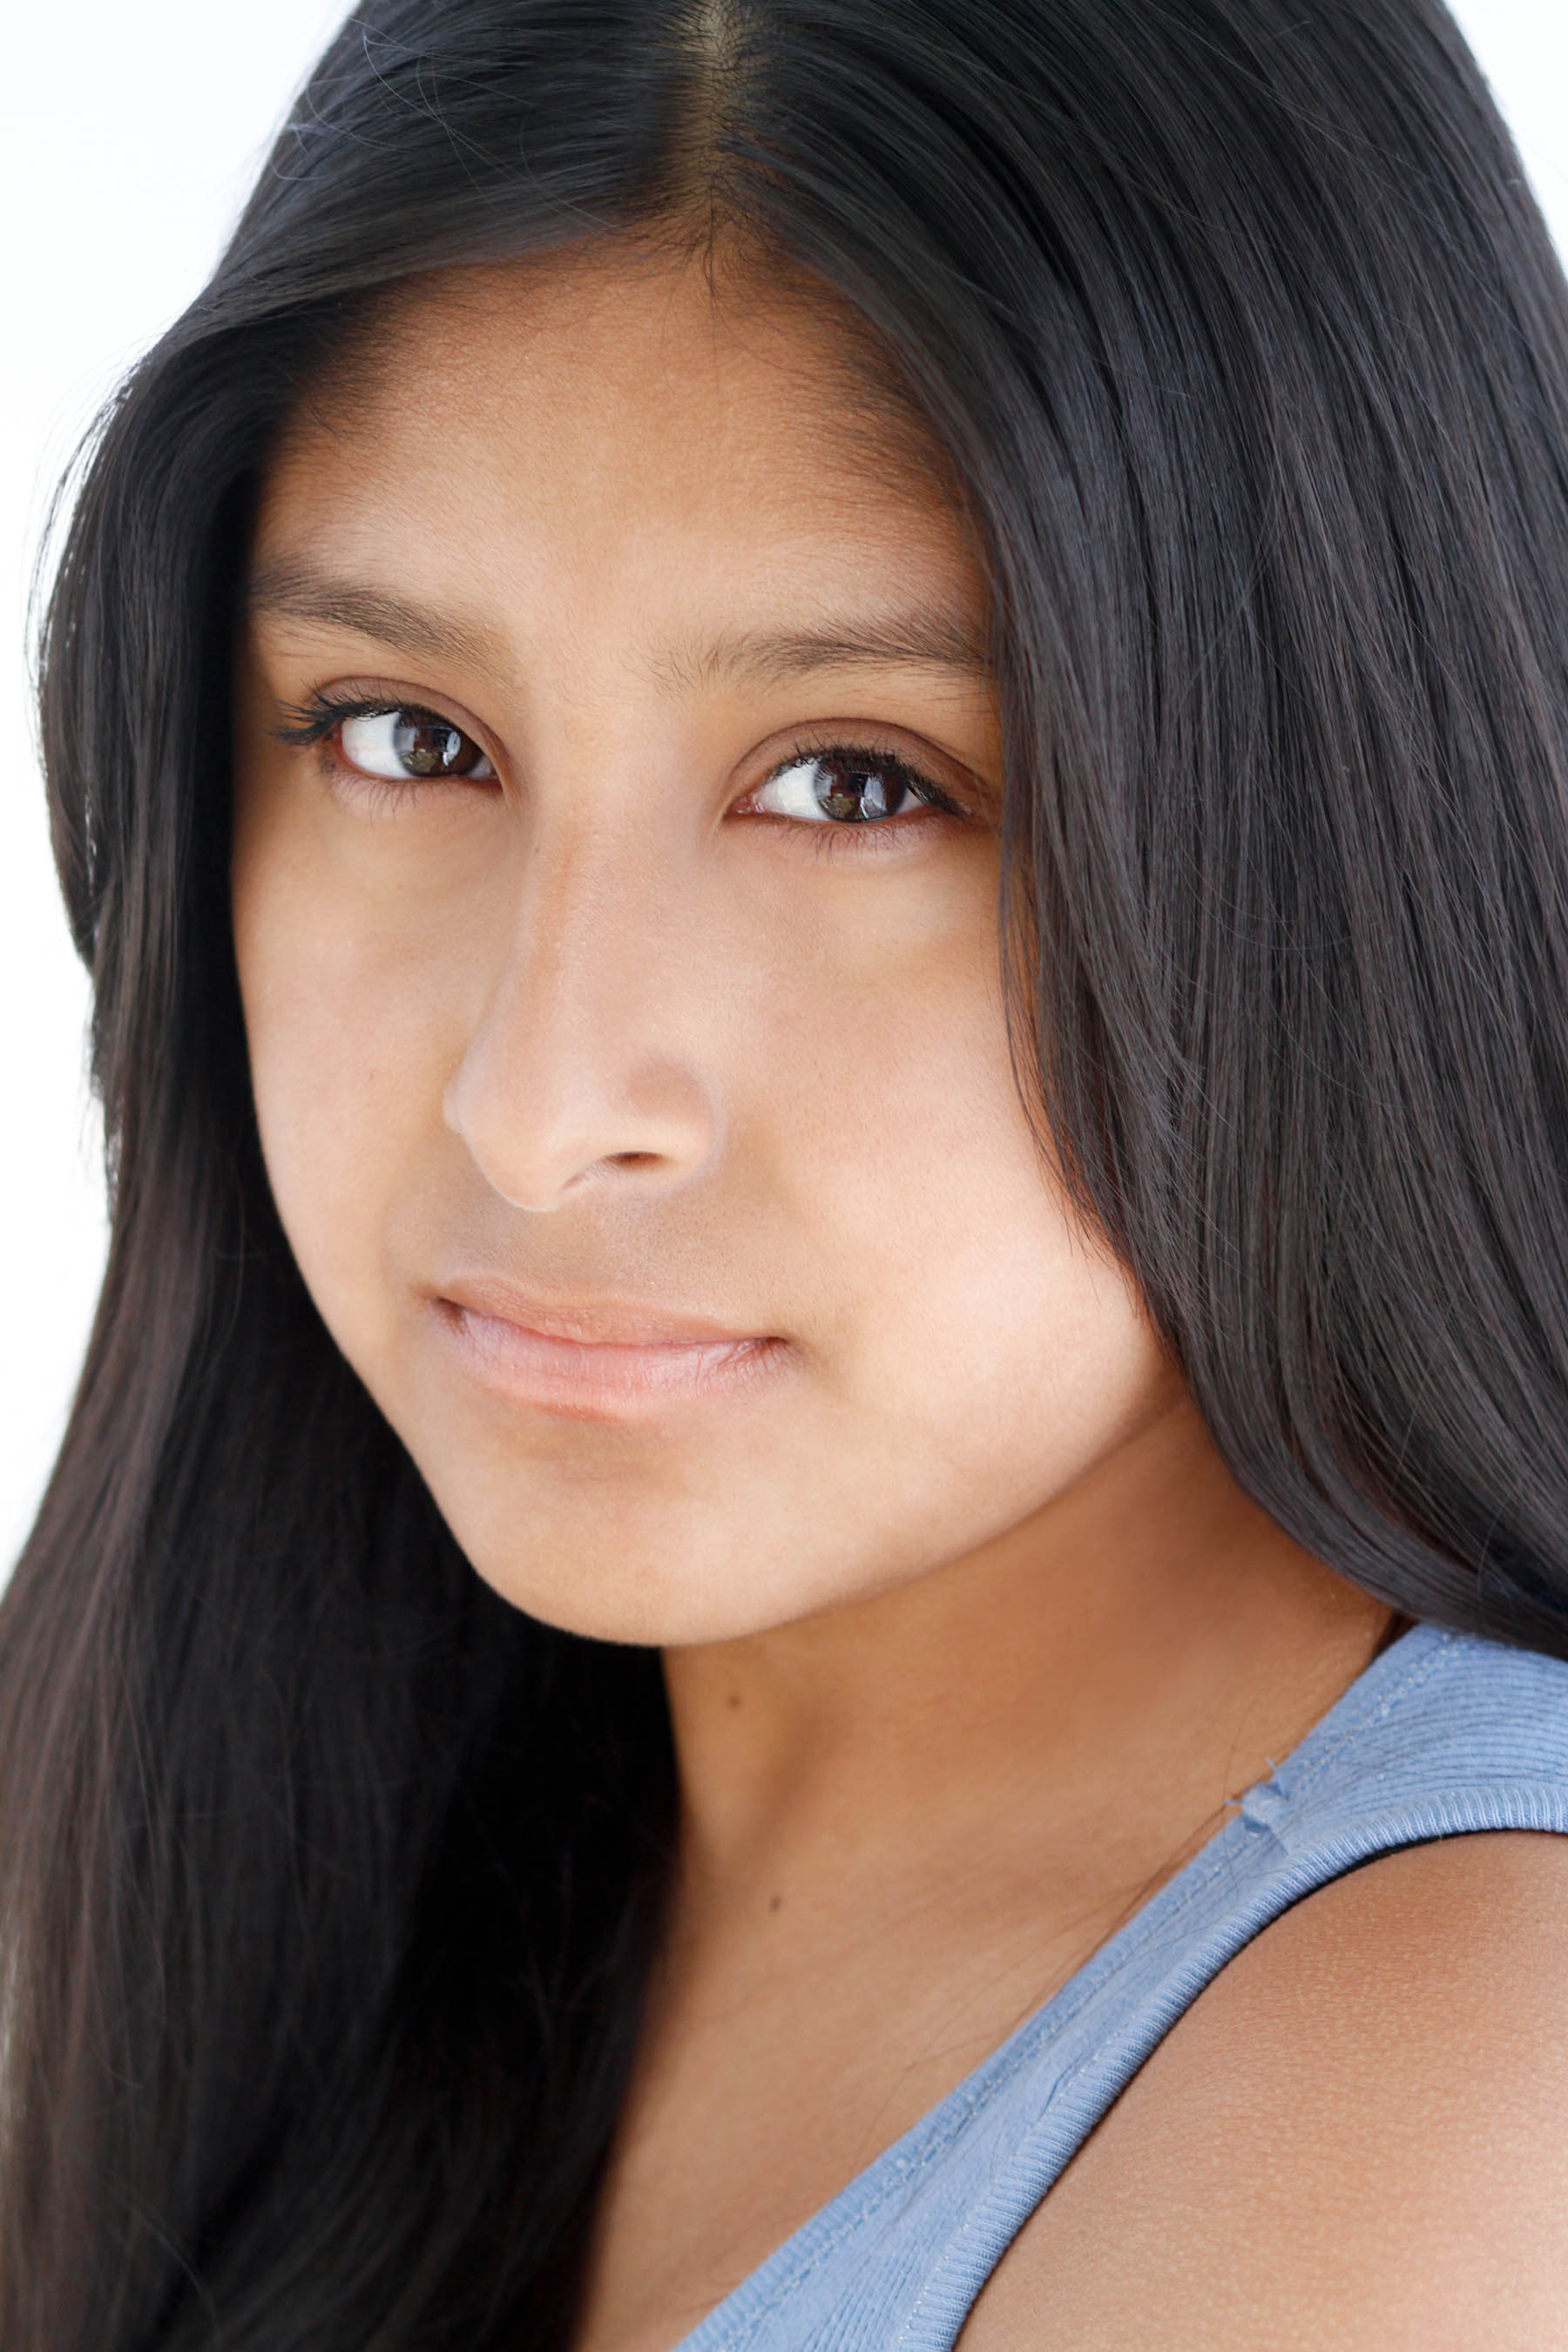 amie_alvarado_photography_los_angeles_actor_headshot.jpg